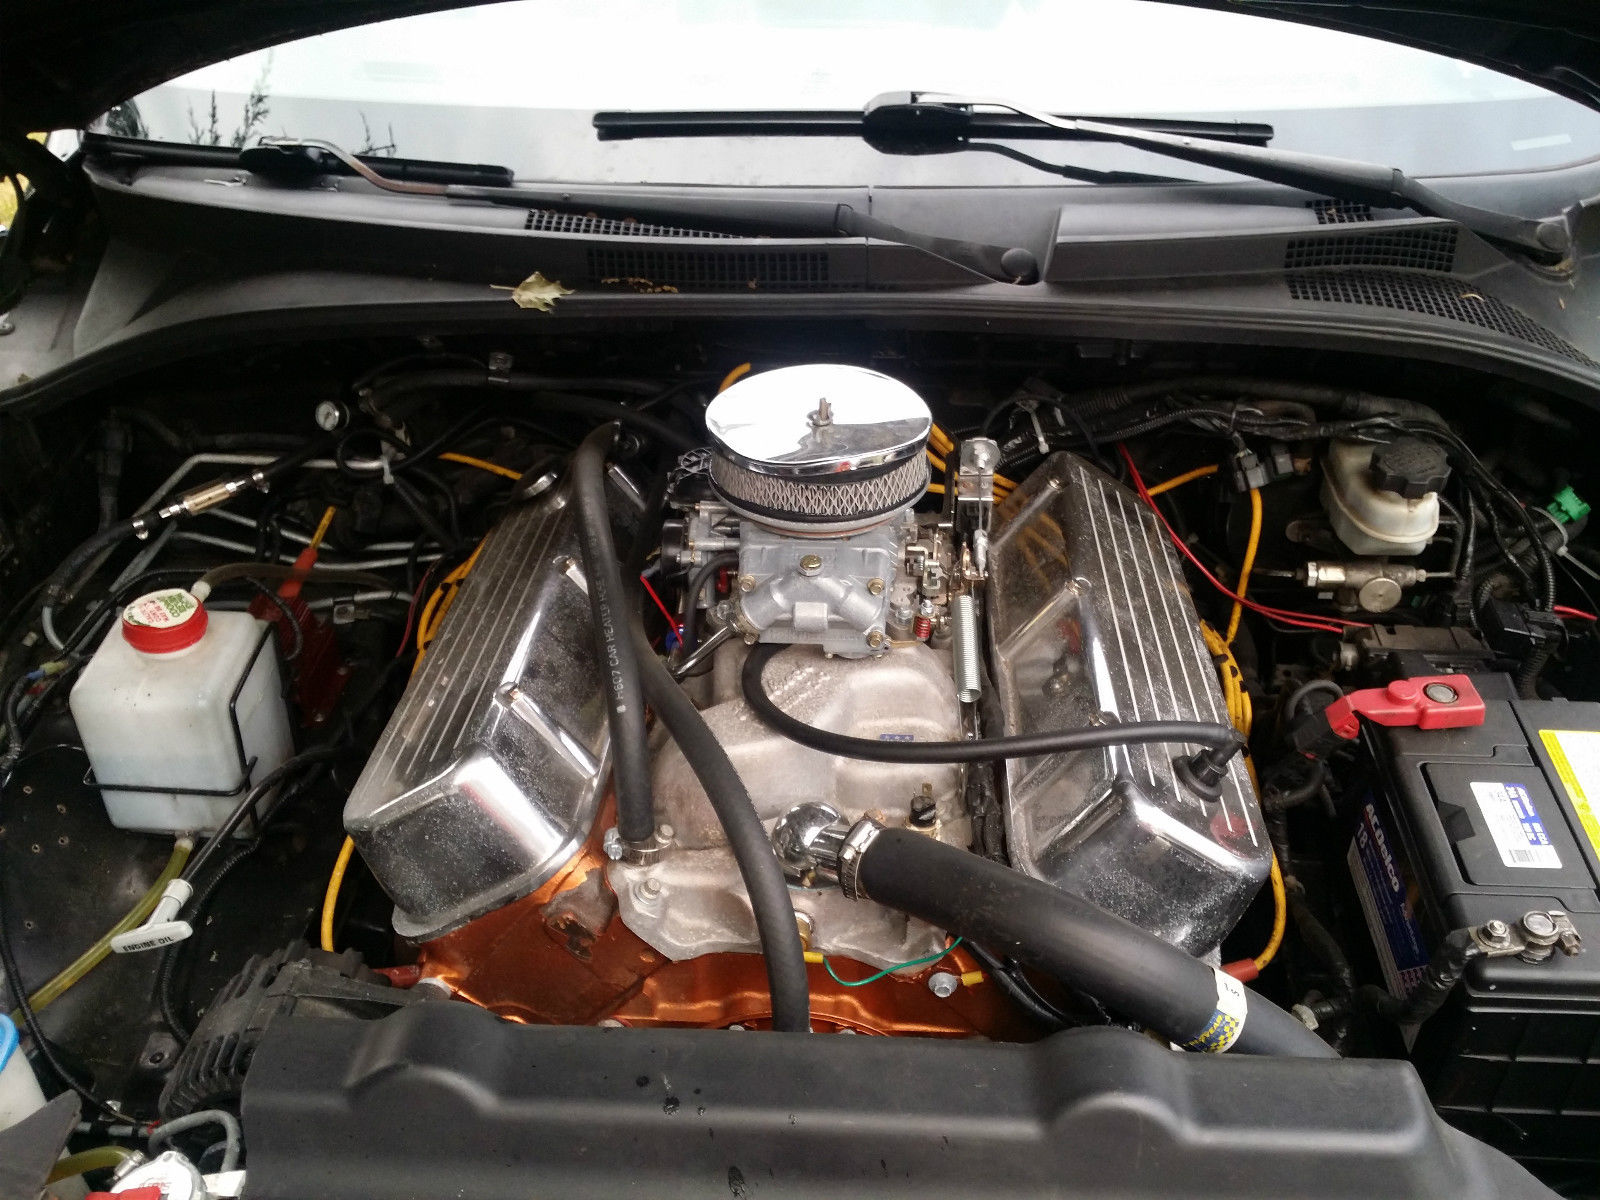 Weirdest Engine Swap Ever: Kia Sorento with Chevy 468 Big-Block V8